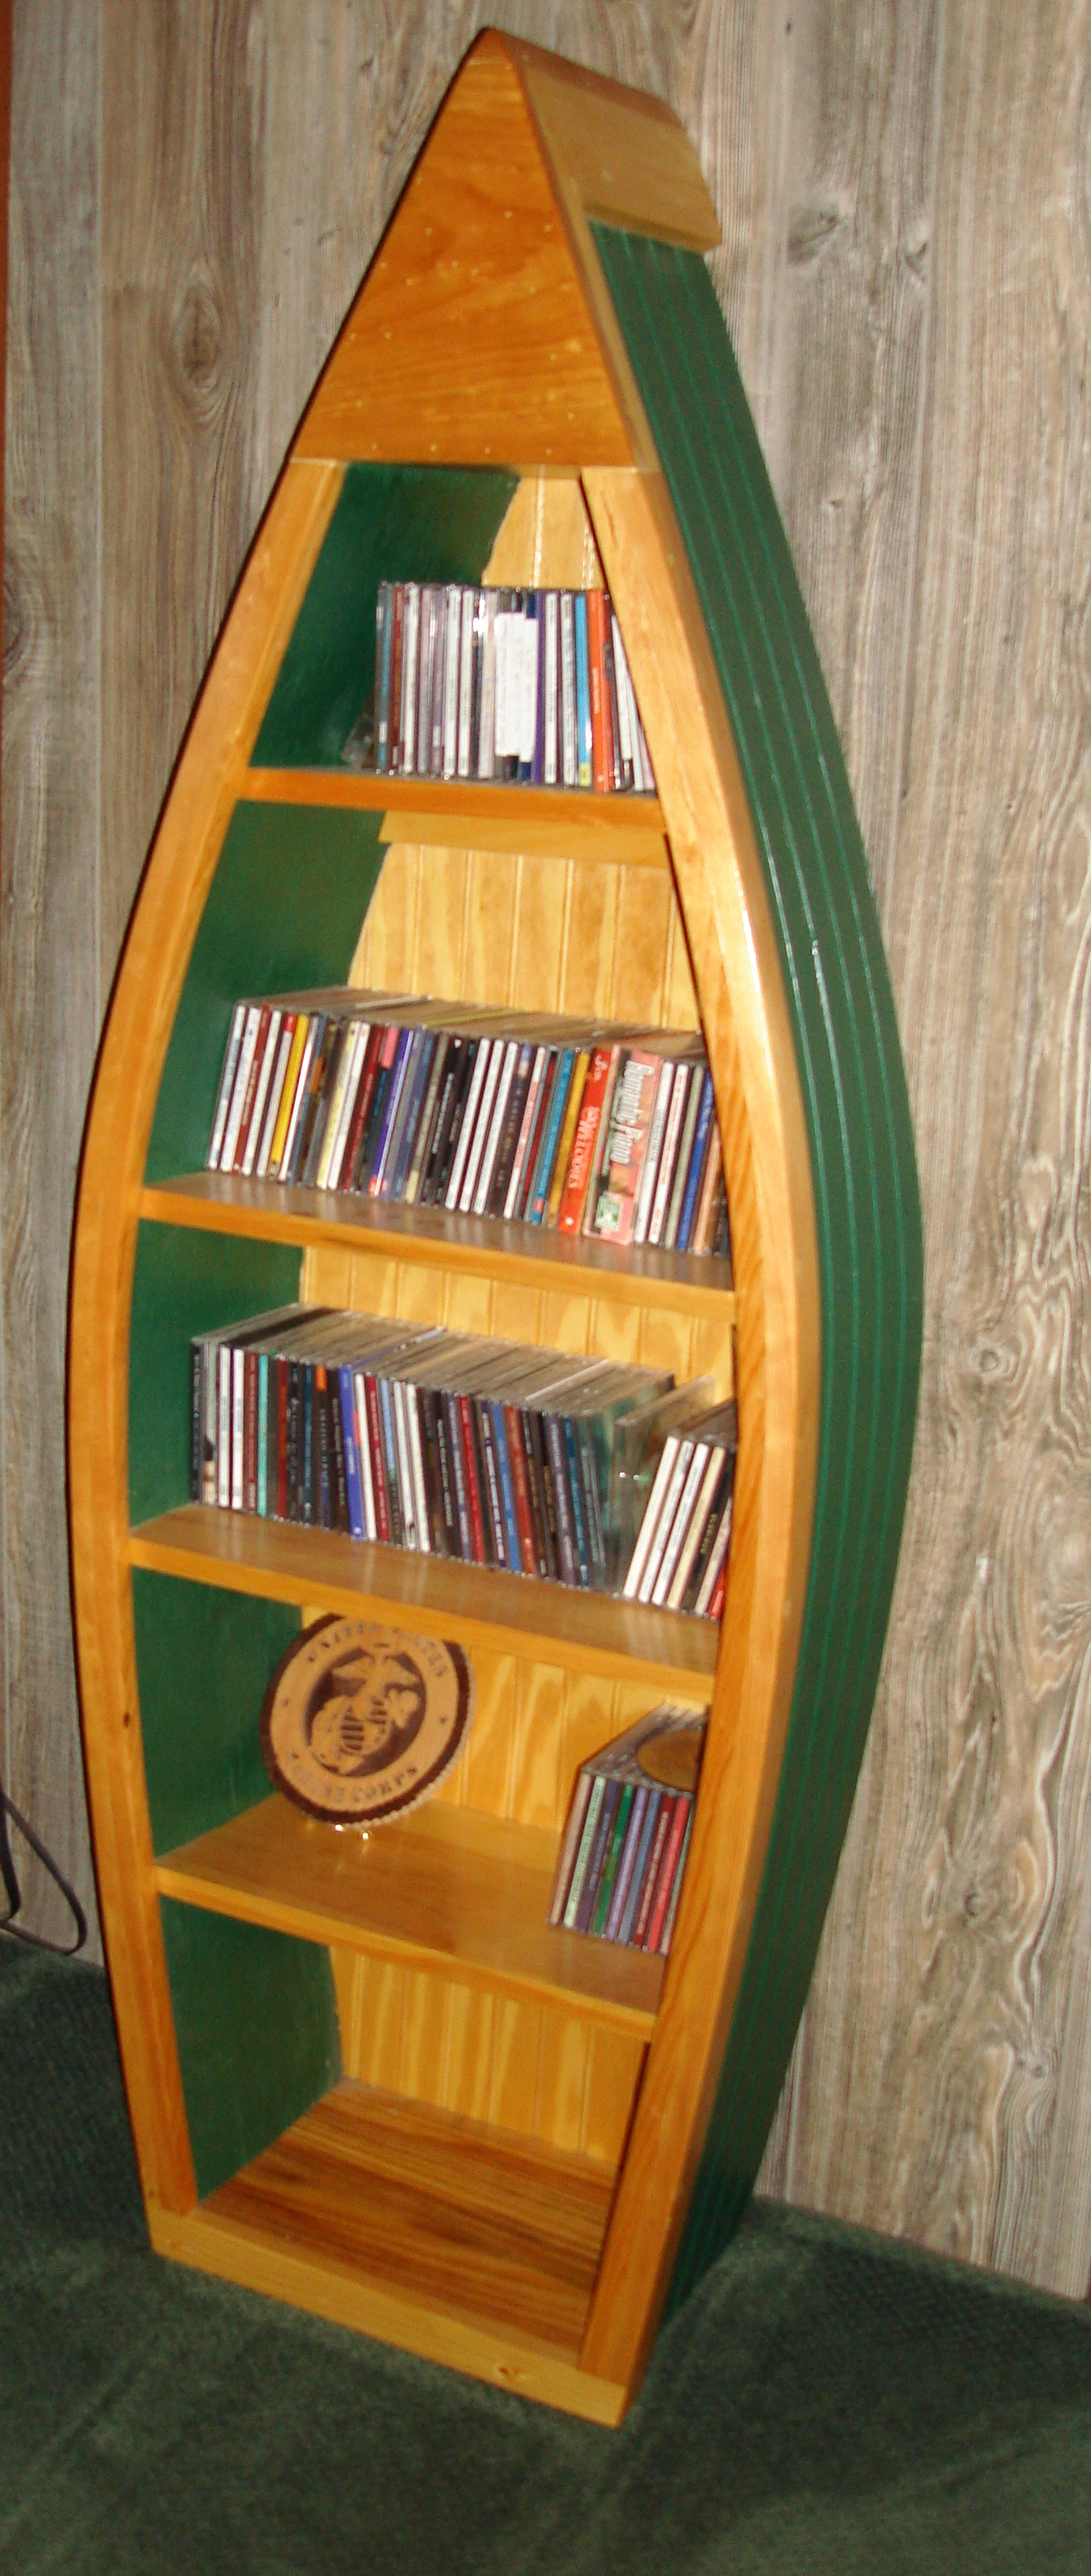 Image of: Model of Boat Bookcase